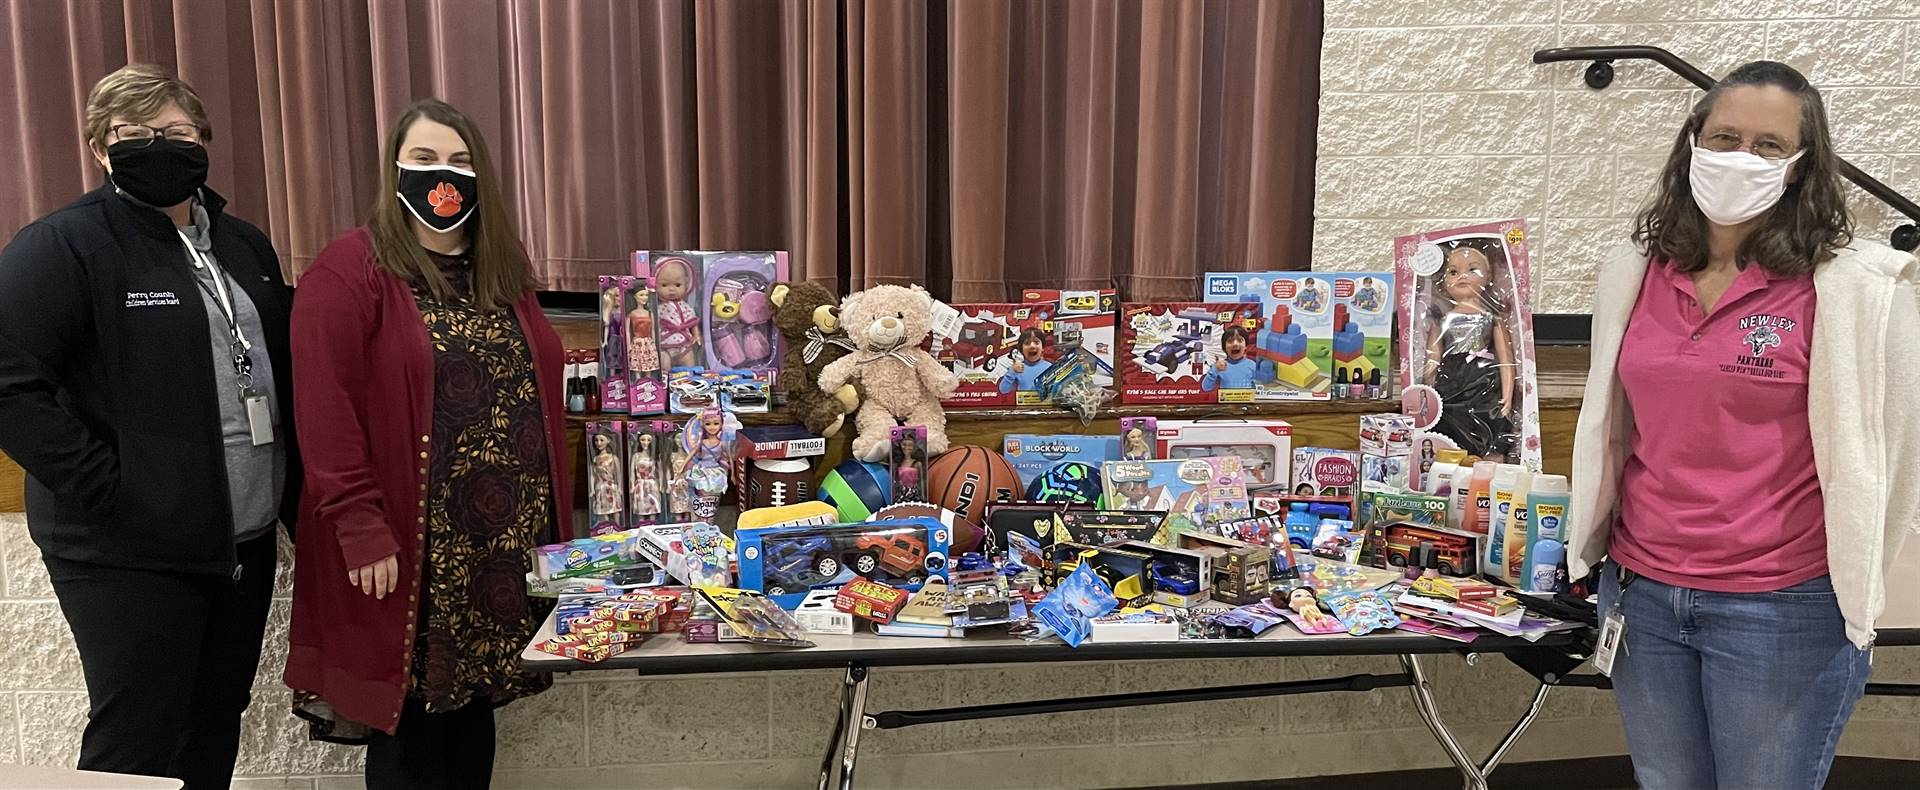 NLHS Toy Donation to Perry County Children's Services